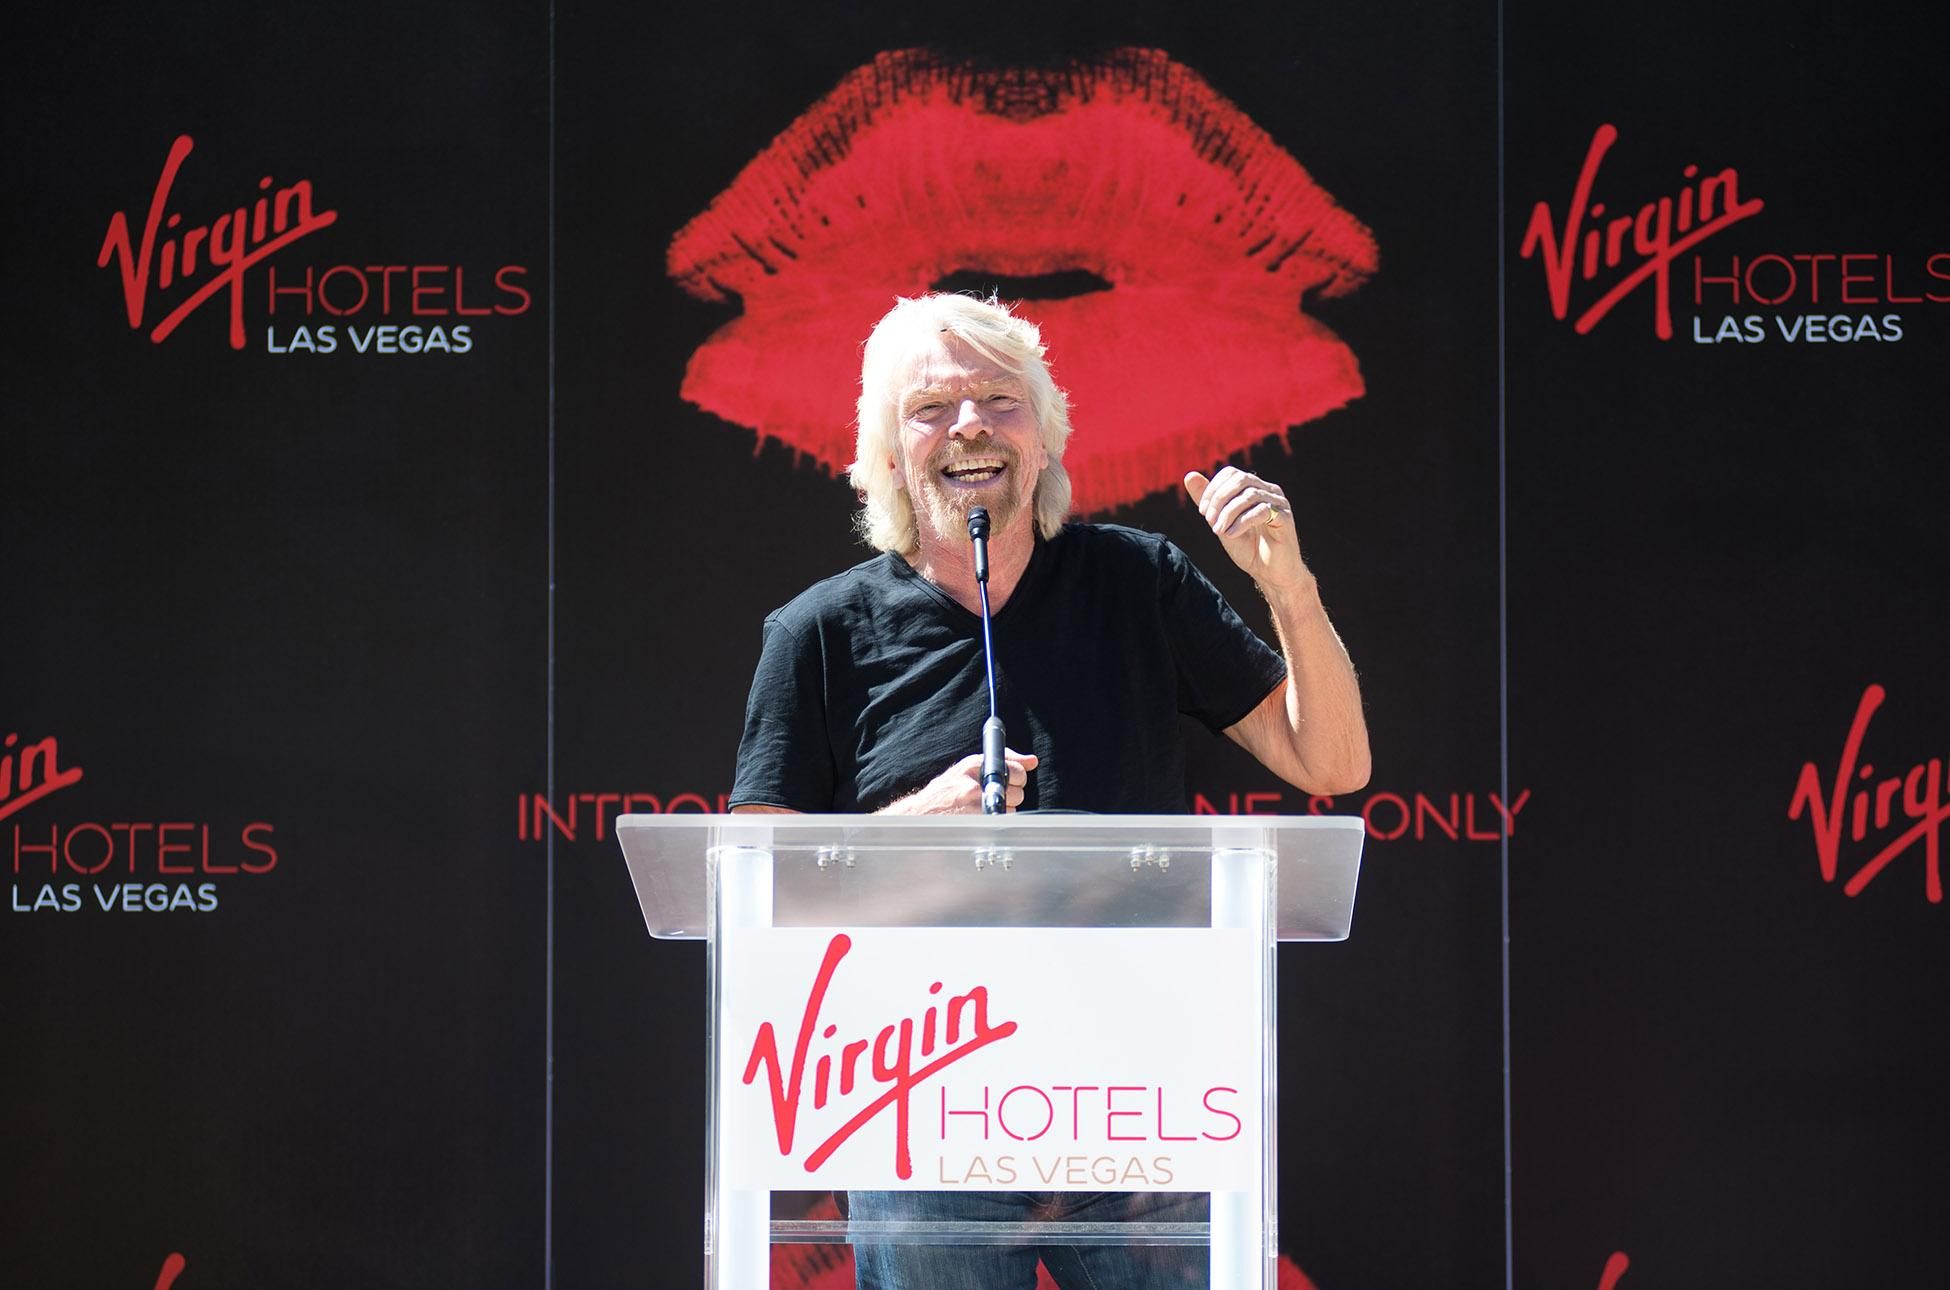 Hard Rock Las Vegas Virgin Richard Branson